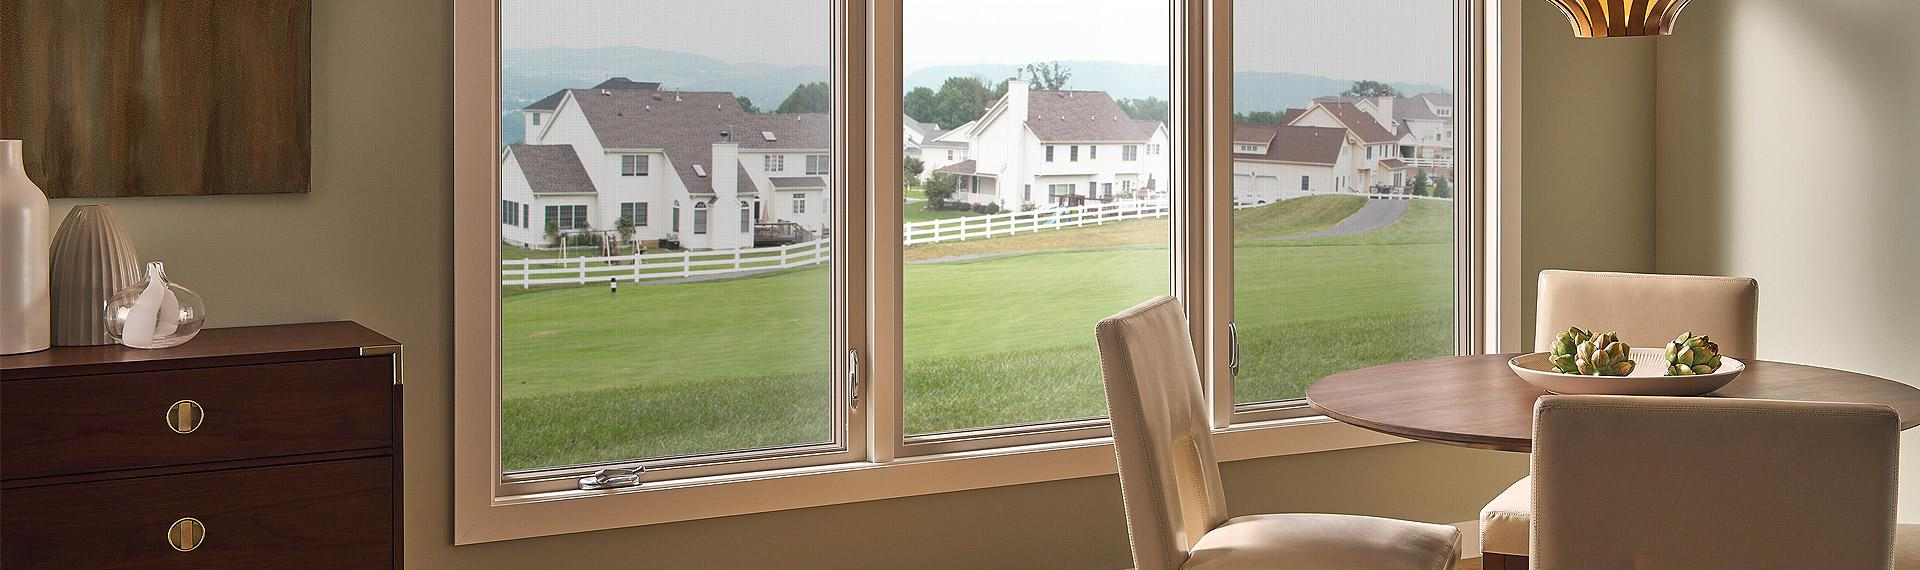 Ultra Series fiberglass casement picture windows